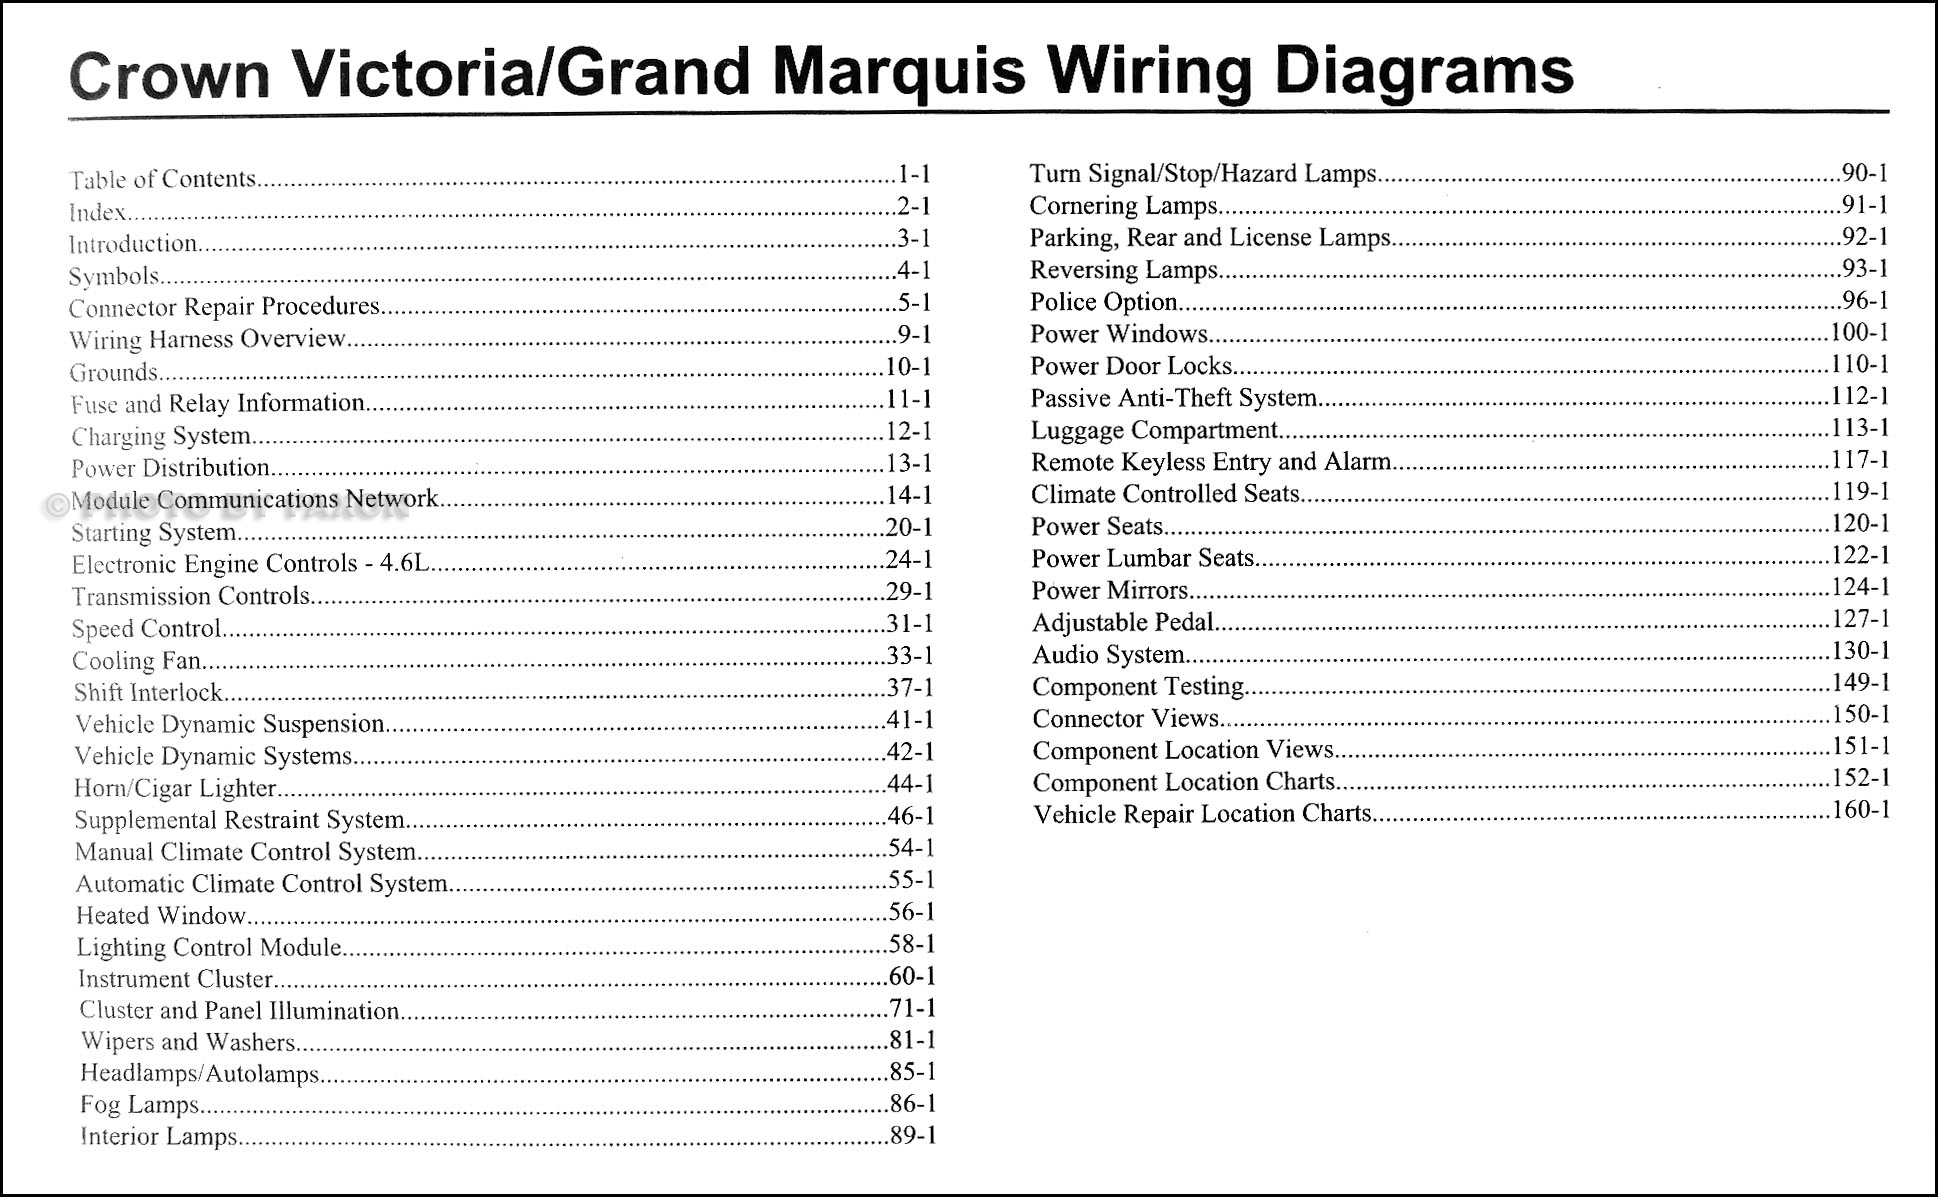 2009FordCrownVictoriaOWD TOC 2009 crown victoria & grand marquis original wiring diagram manual 2002 mercury grand marquis radio wiring diagram at cos-gaming.co